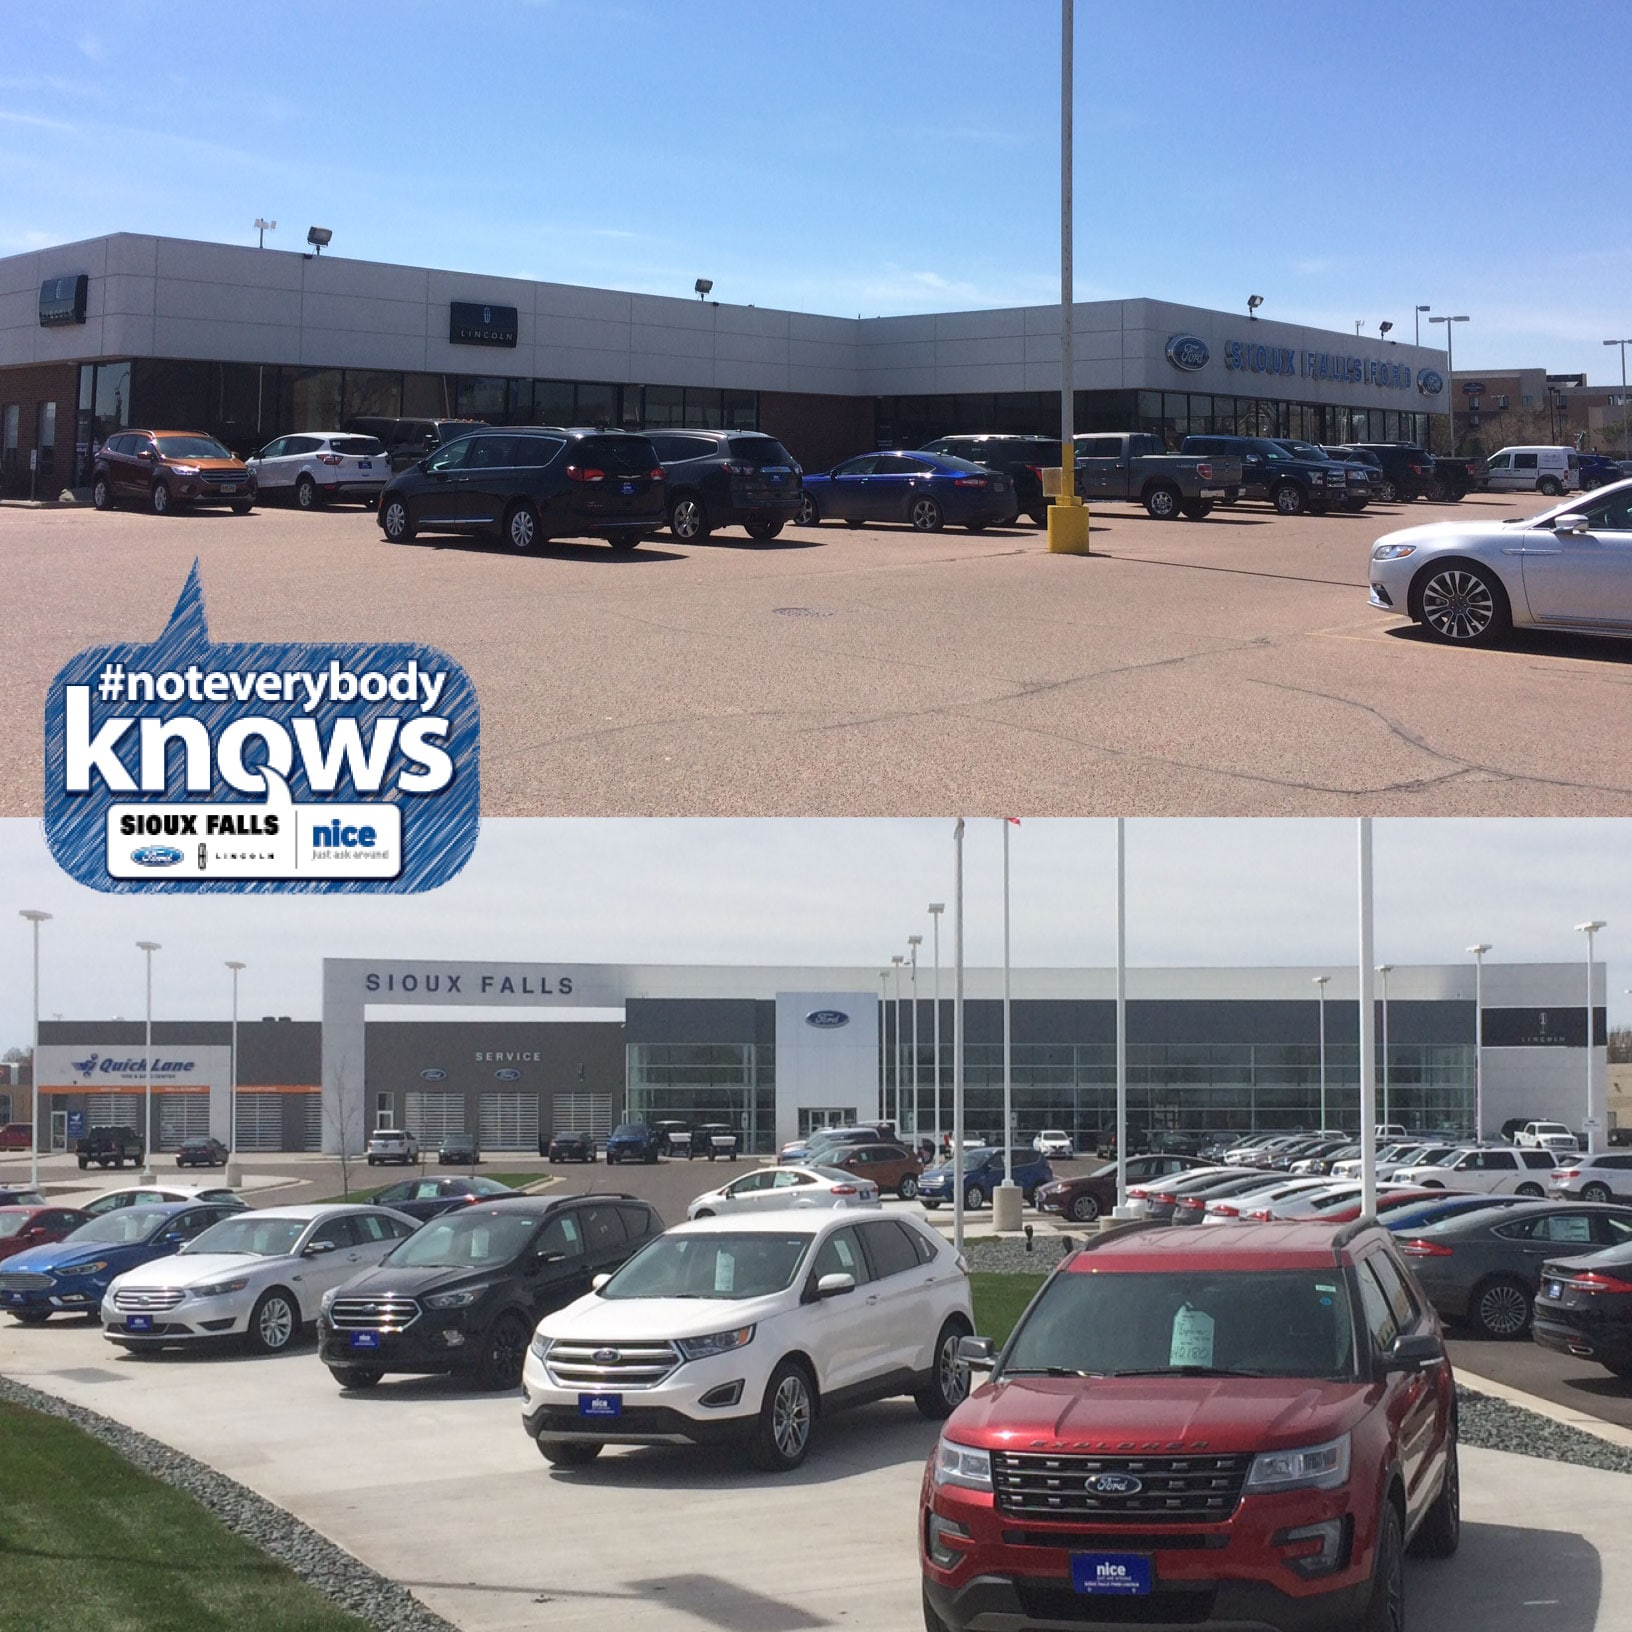 Sioux falls ford lincoln car dealership in sioux falls sd for Billion motors sioux falls south dakota